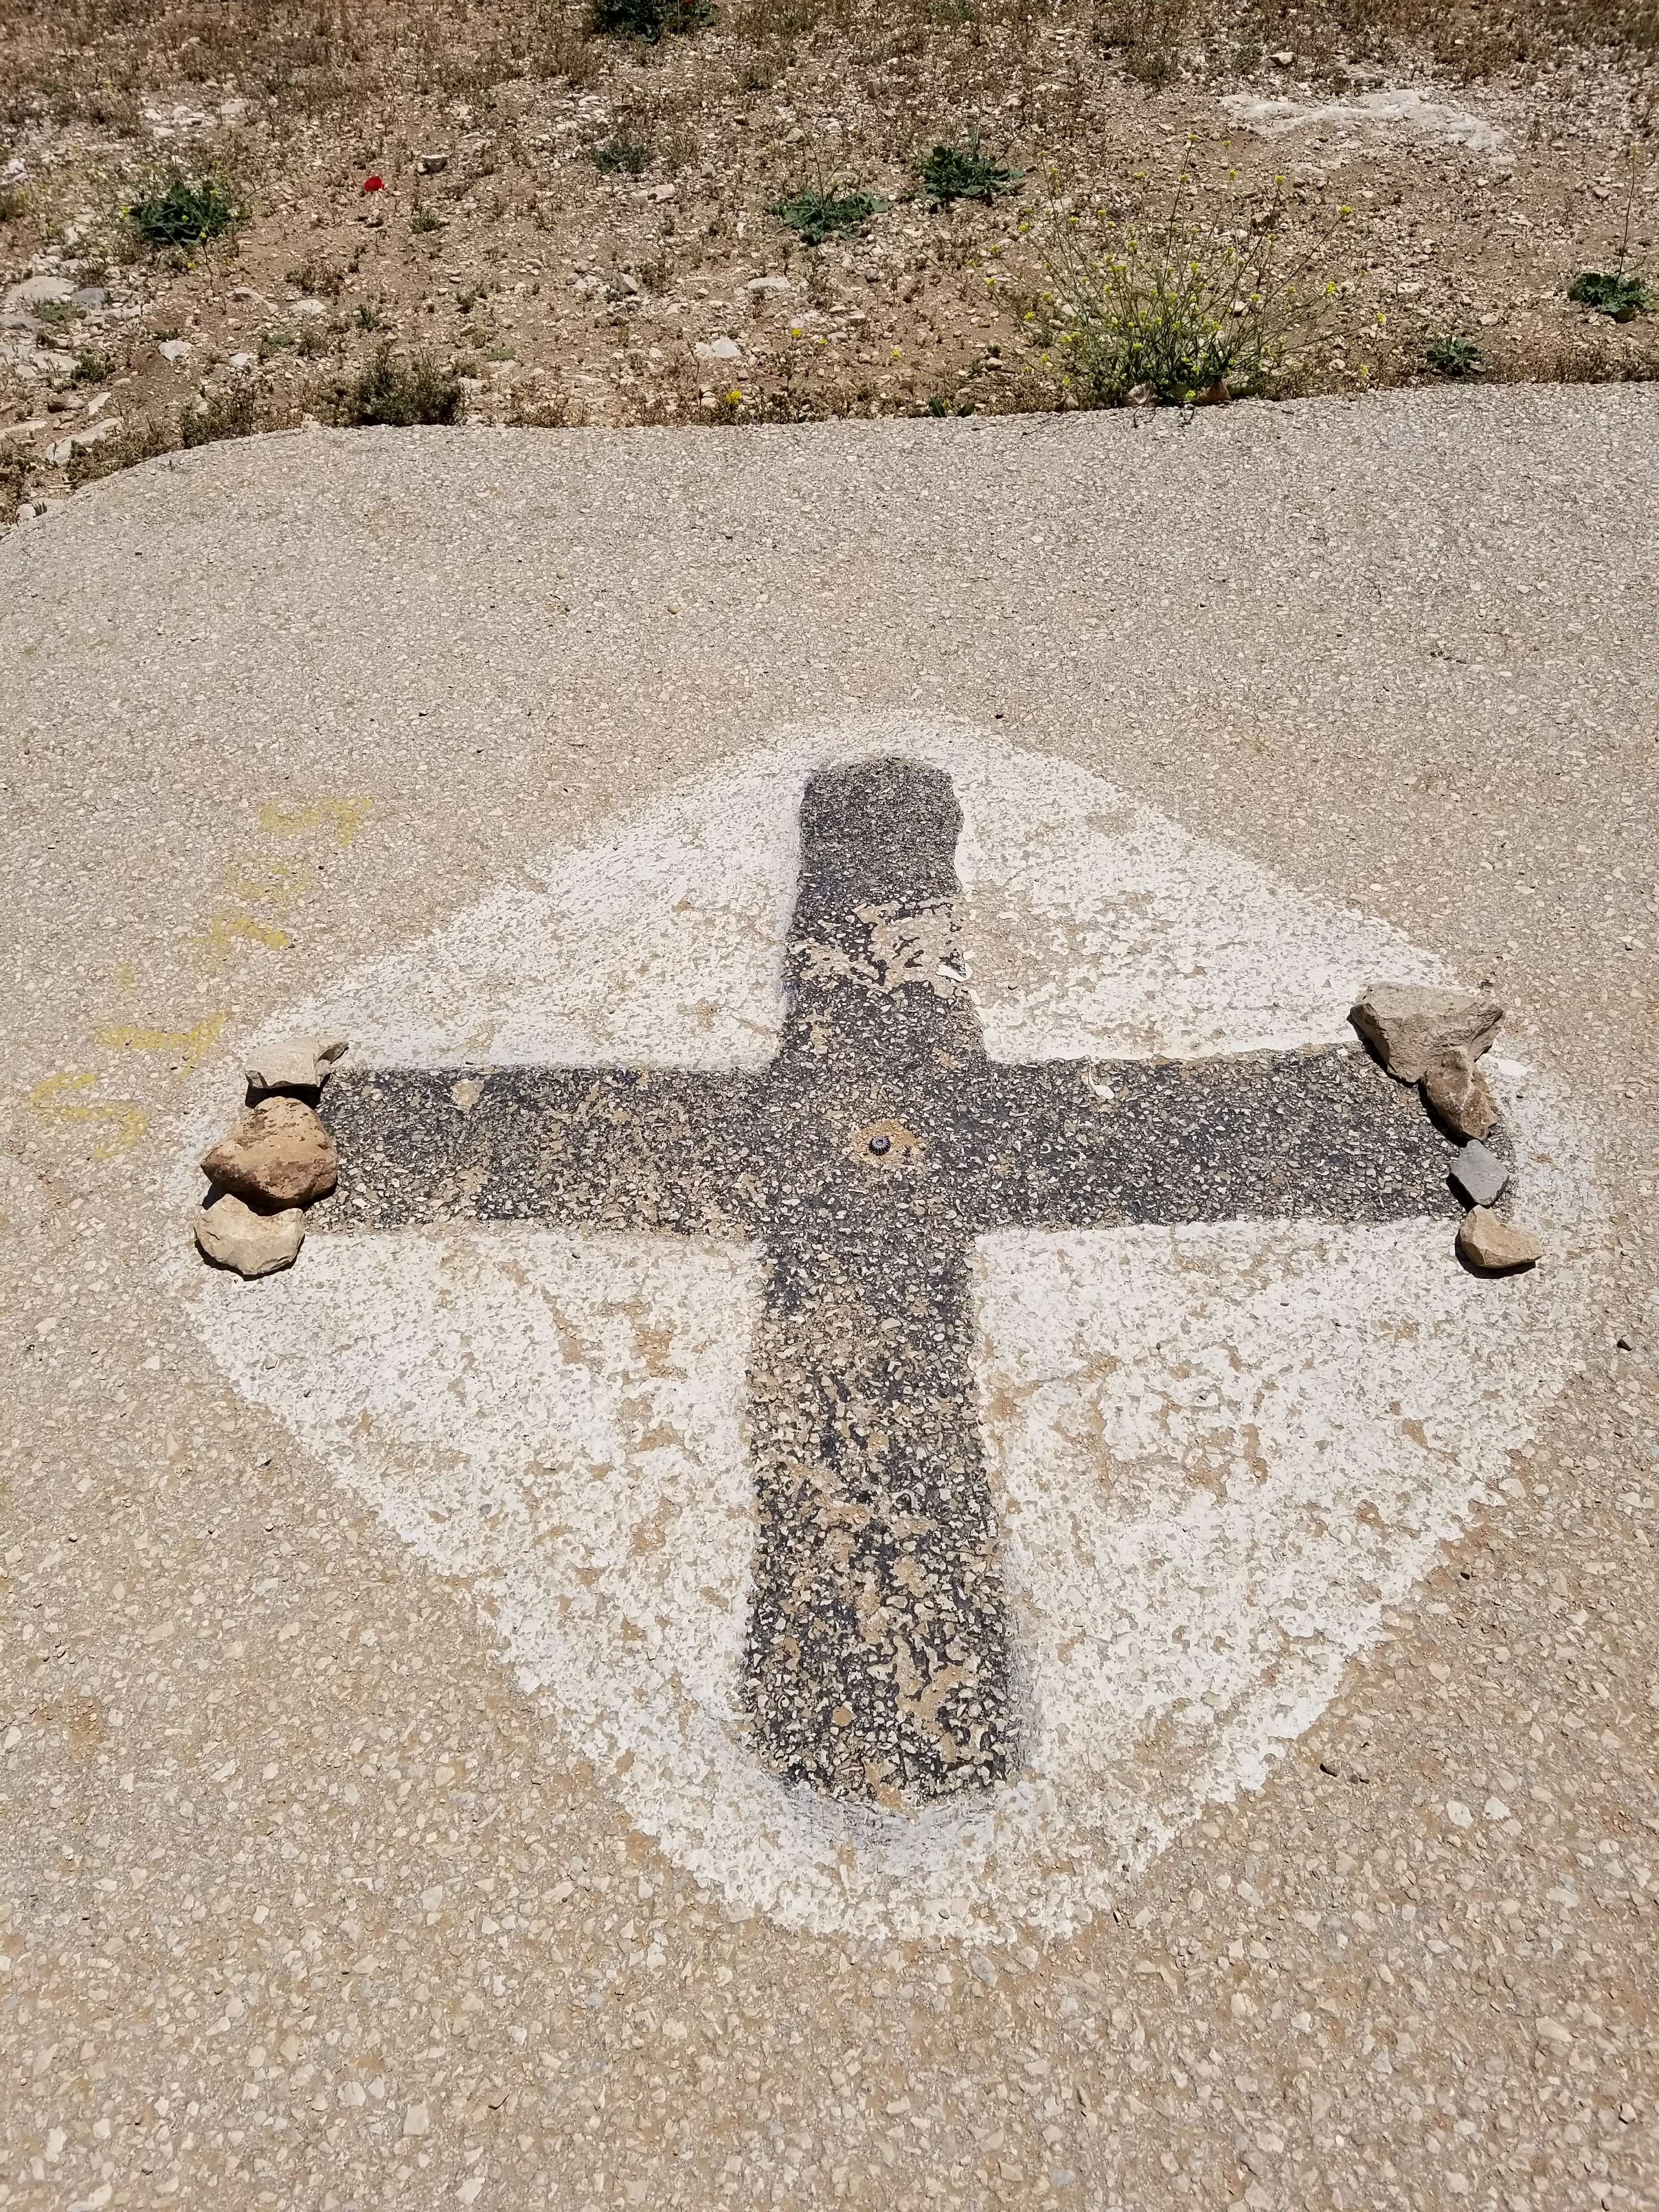 The UPDR Cross found during a trip to Mount Gerizim, Israel